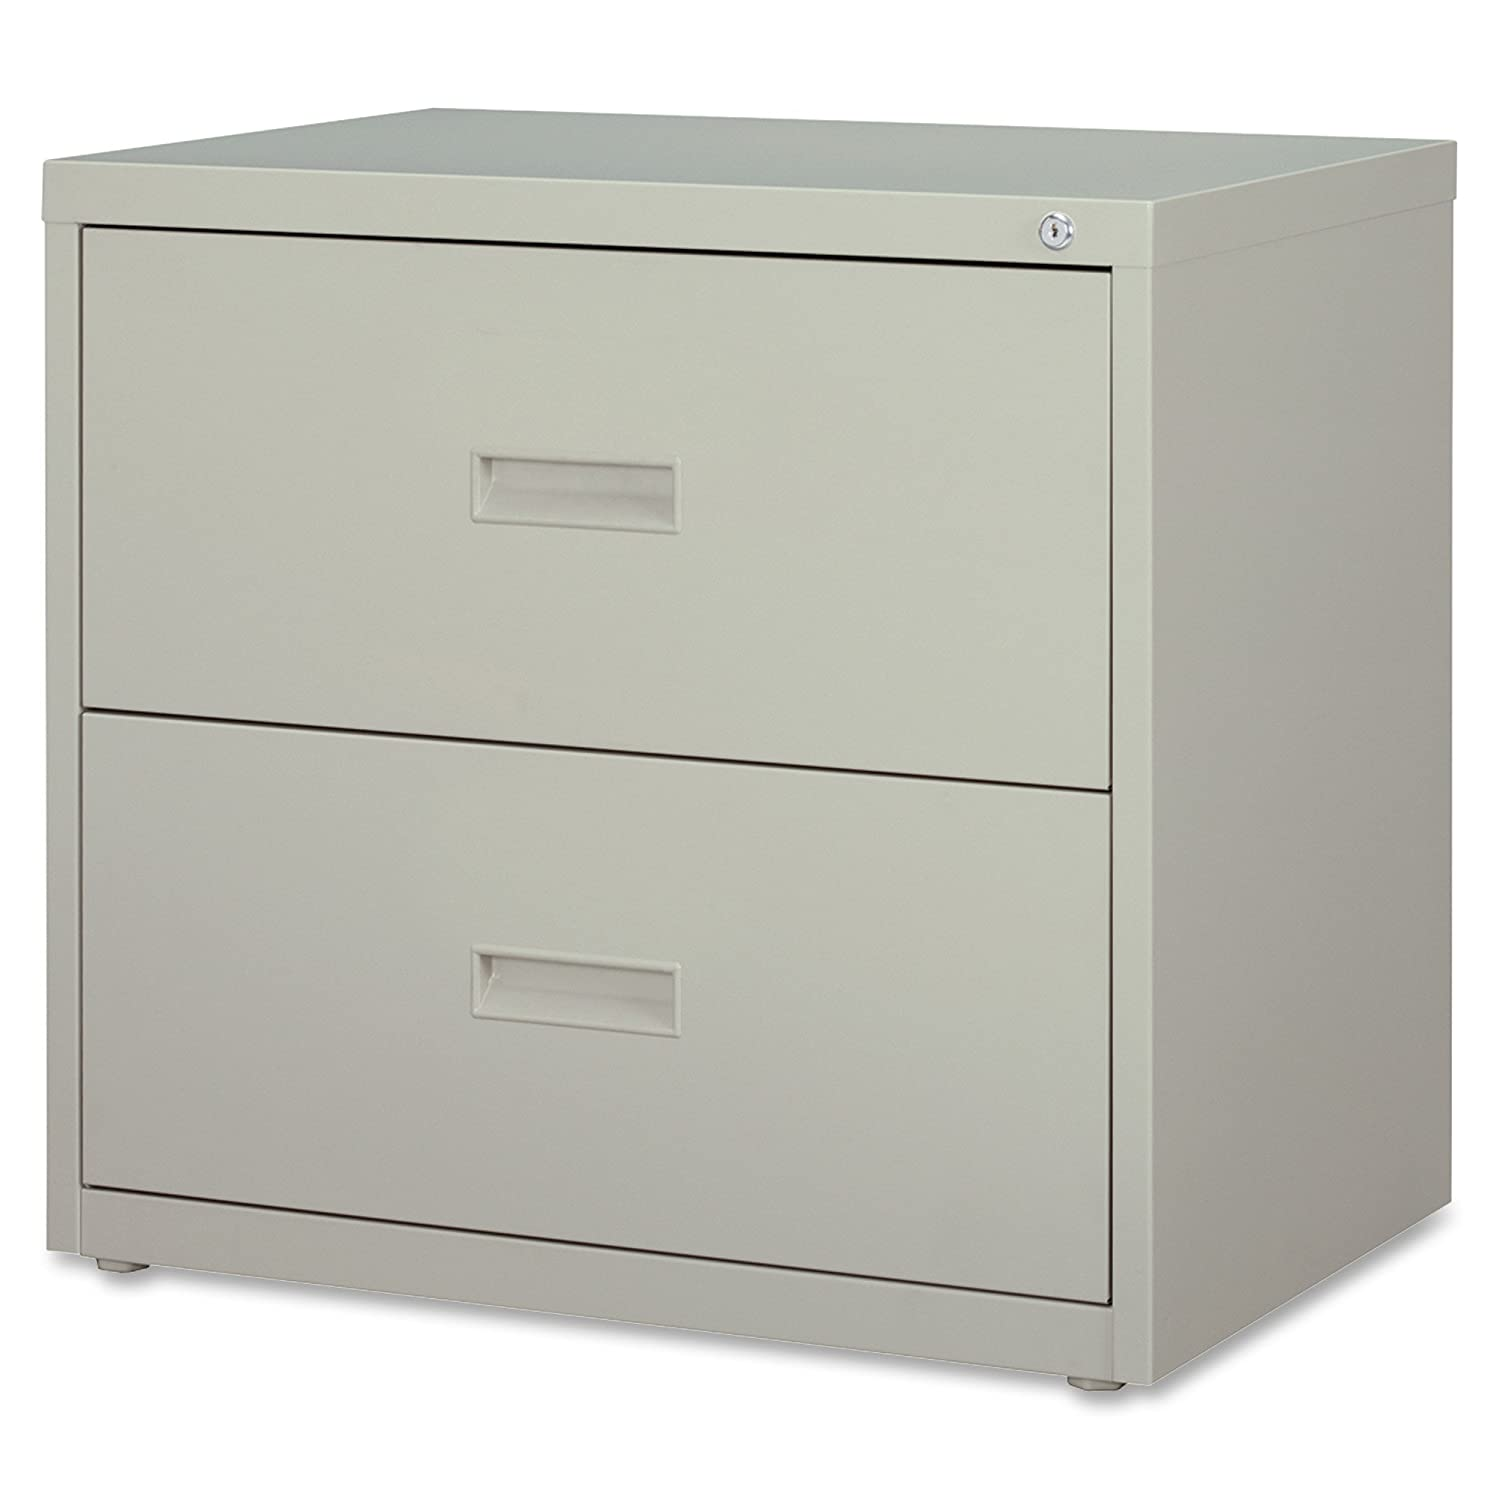 amazon com lorell 2 drawer lateral file 30 by 18 5 8 by 28 1 8 rh amazon com 30 wood lateral file cabinet alera 30 lateral file cabinet